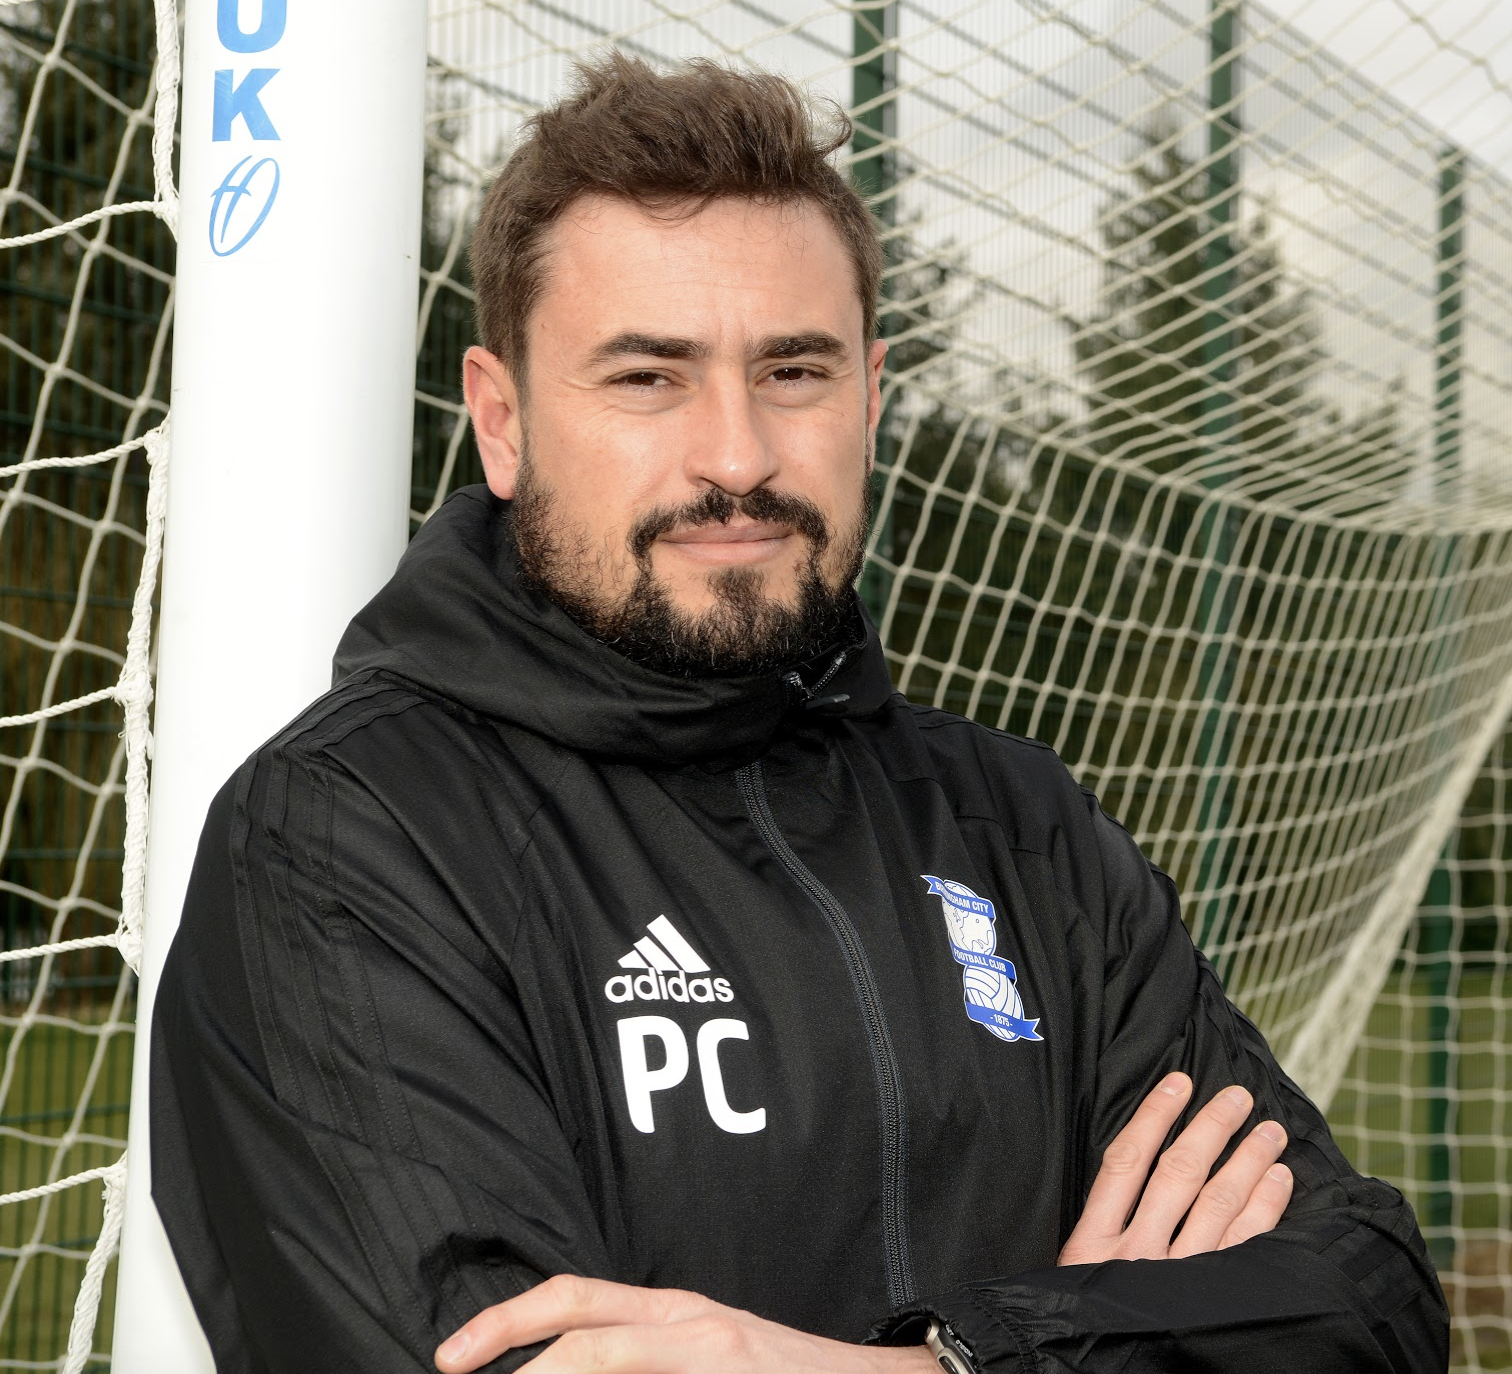 The importance of set pieces & the brand of football he believes in, Pep Clotet talks to This Football Life